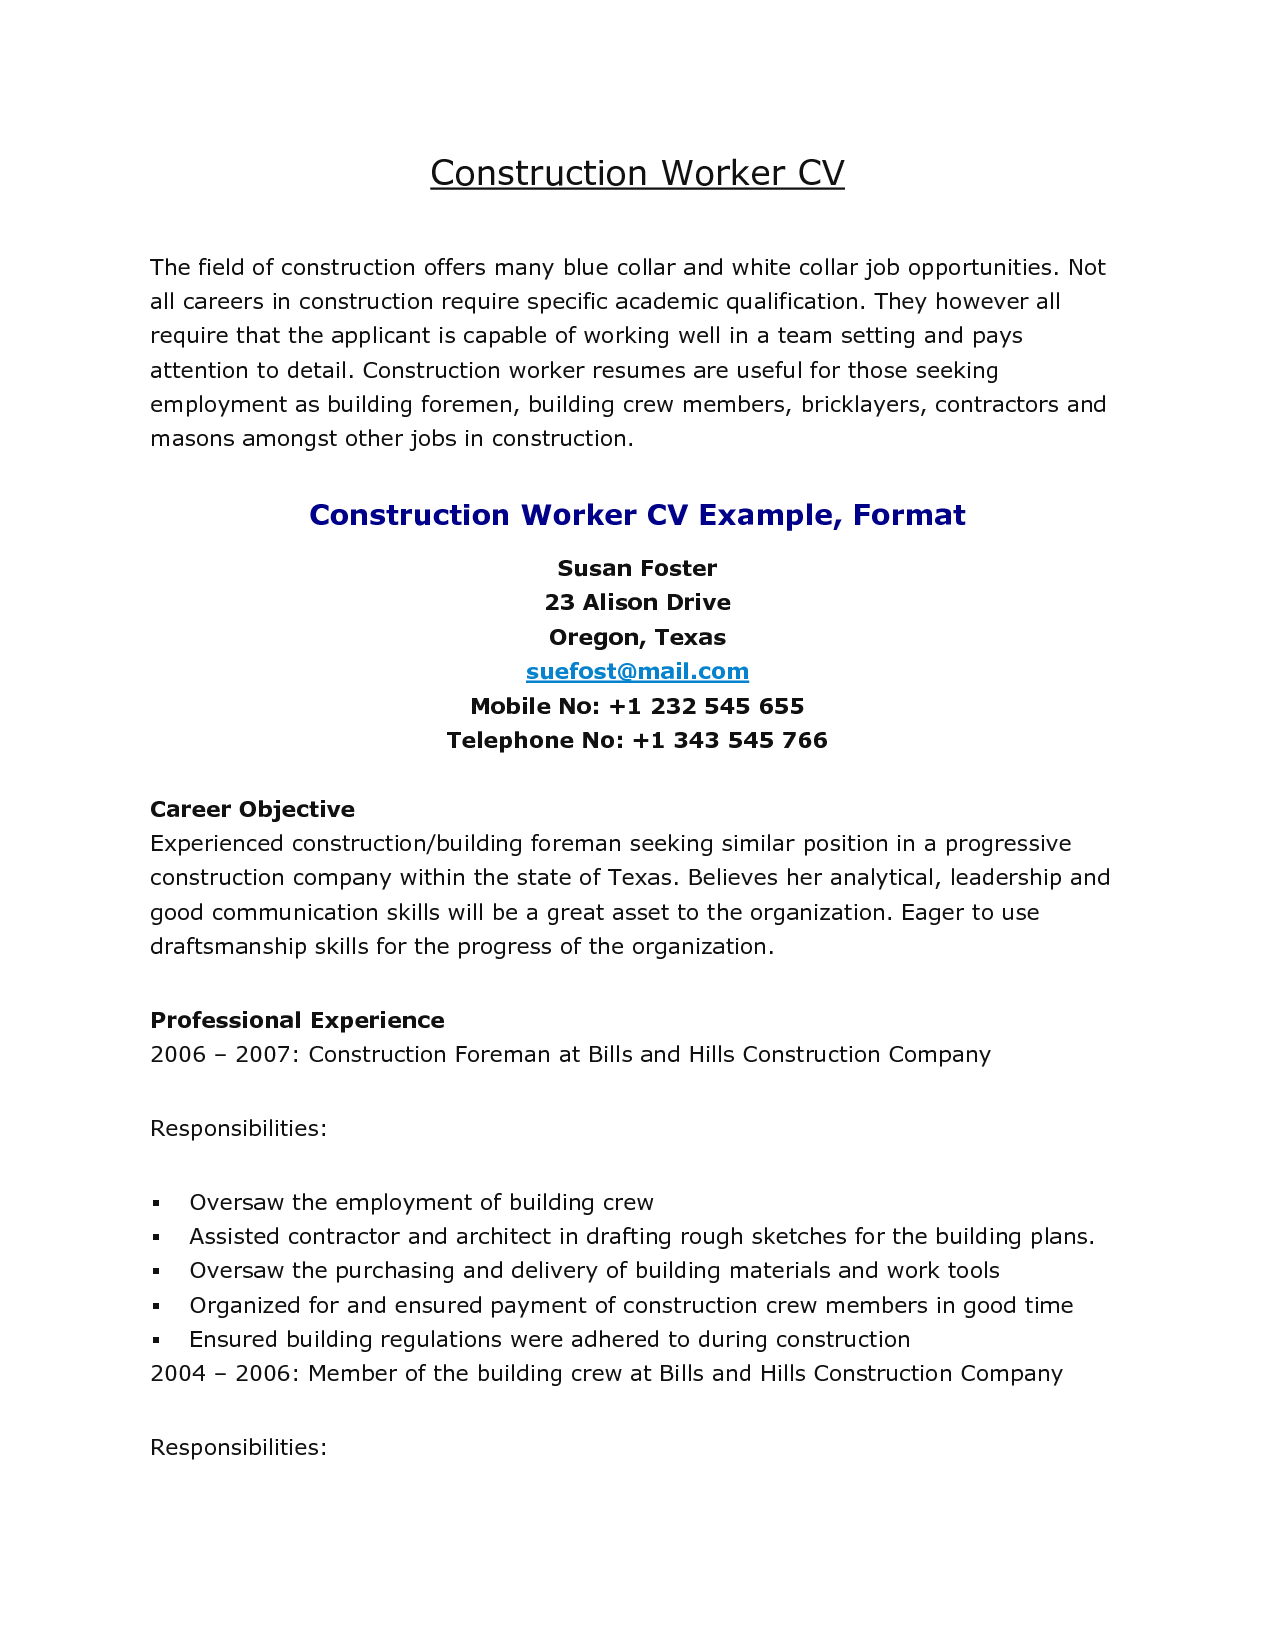 Laborer Resume Construction Workers Worker Resume Samples Free Edit With Word